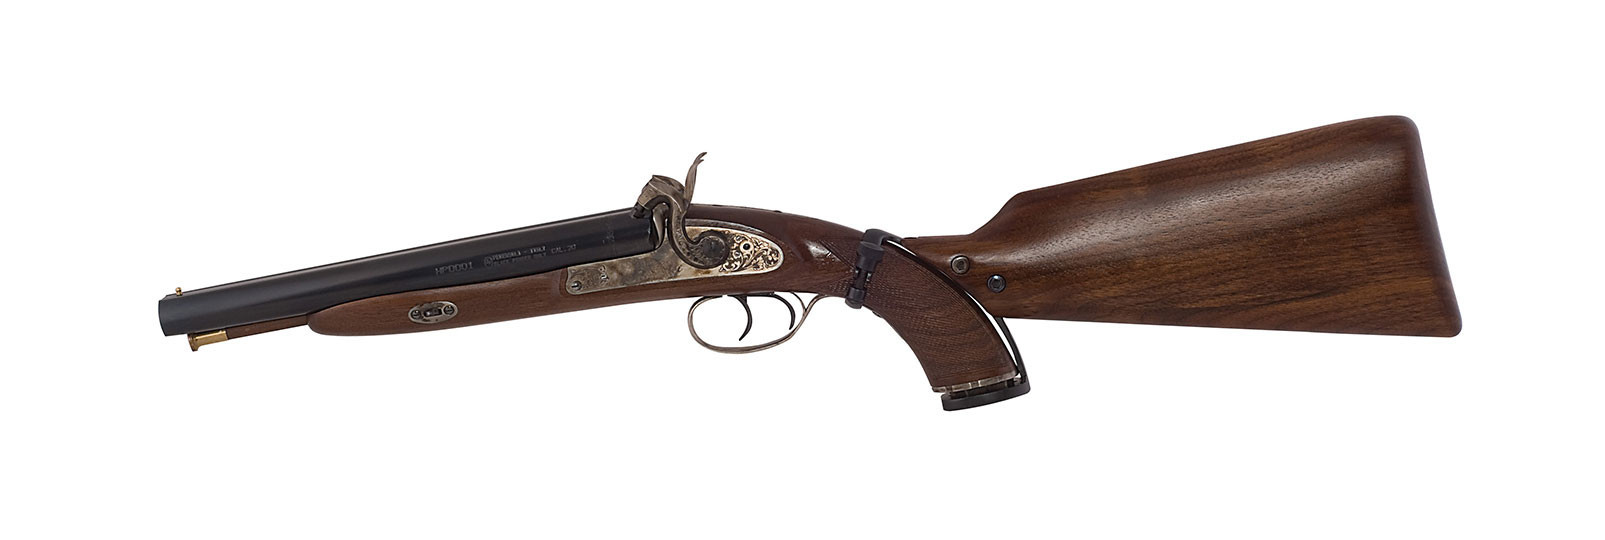 Howdah shoulder stock